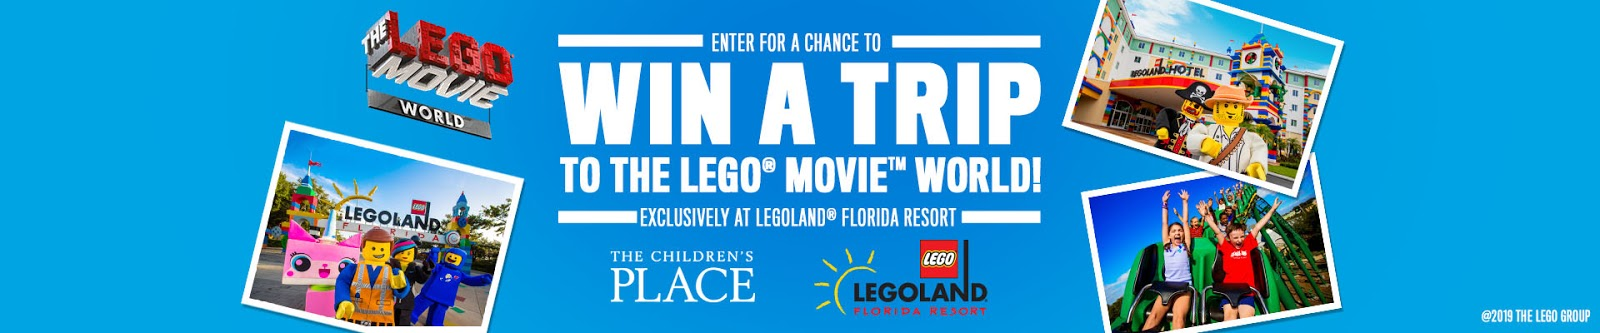 The Childrens Place Lego Movie Sweepstakes | Daily Kids Deals